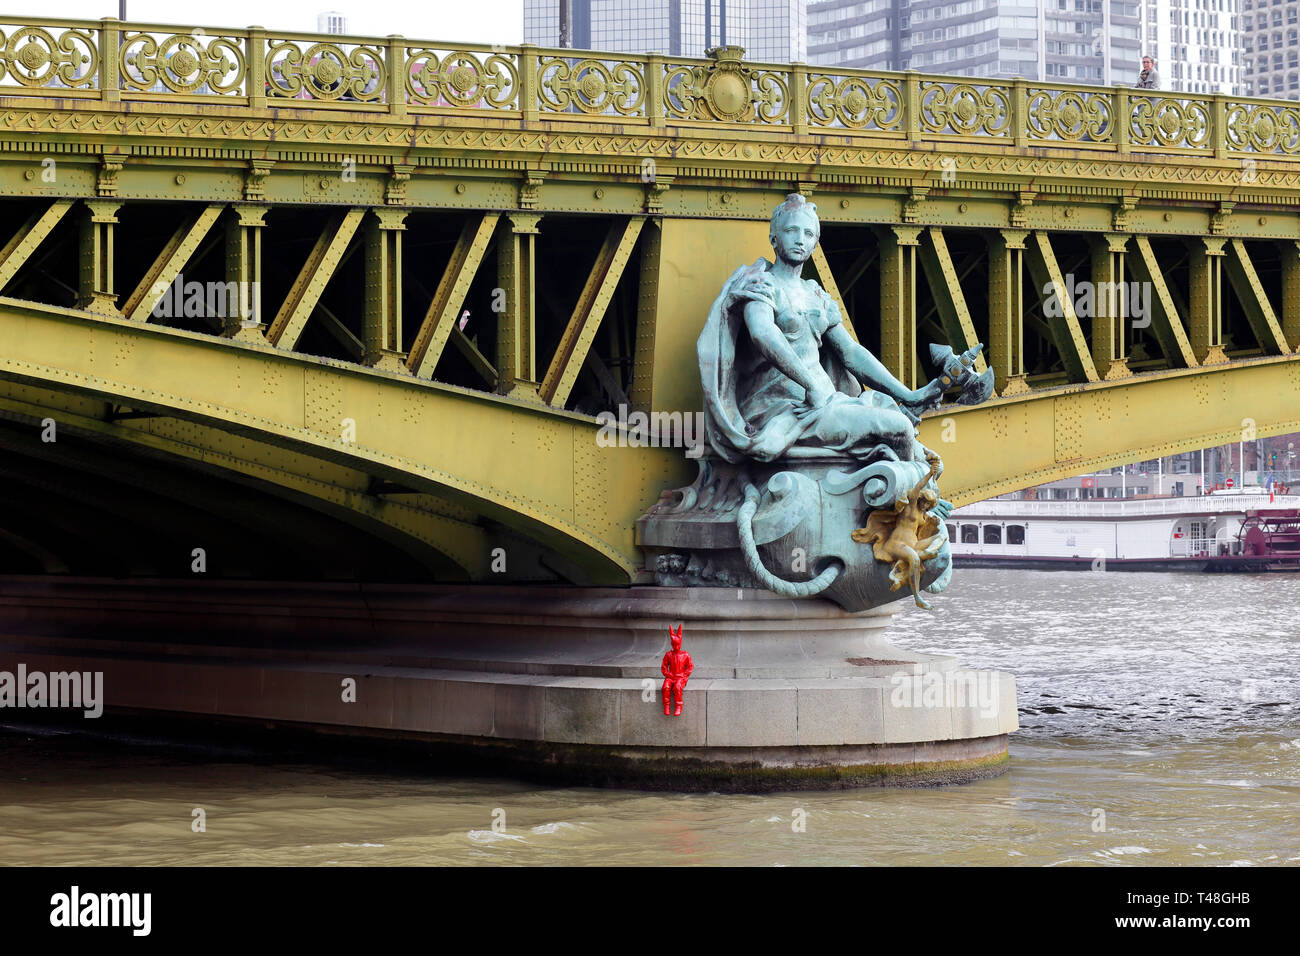 'Ville de Paris' one of four statues by Jean-Antoine Injalbert adorning Pont Mirabeau over the Paris Seine with an added red statue by street artist J - Stock Image